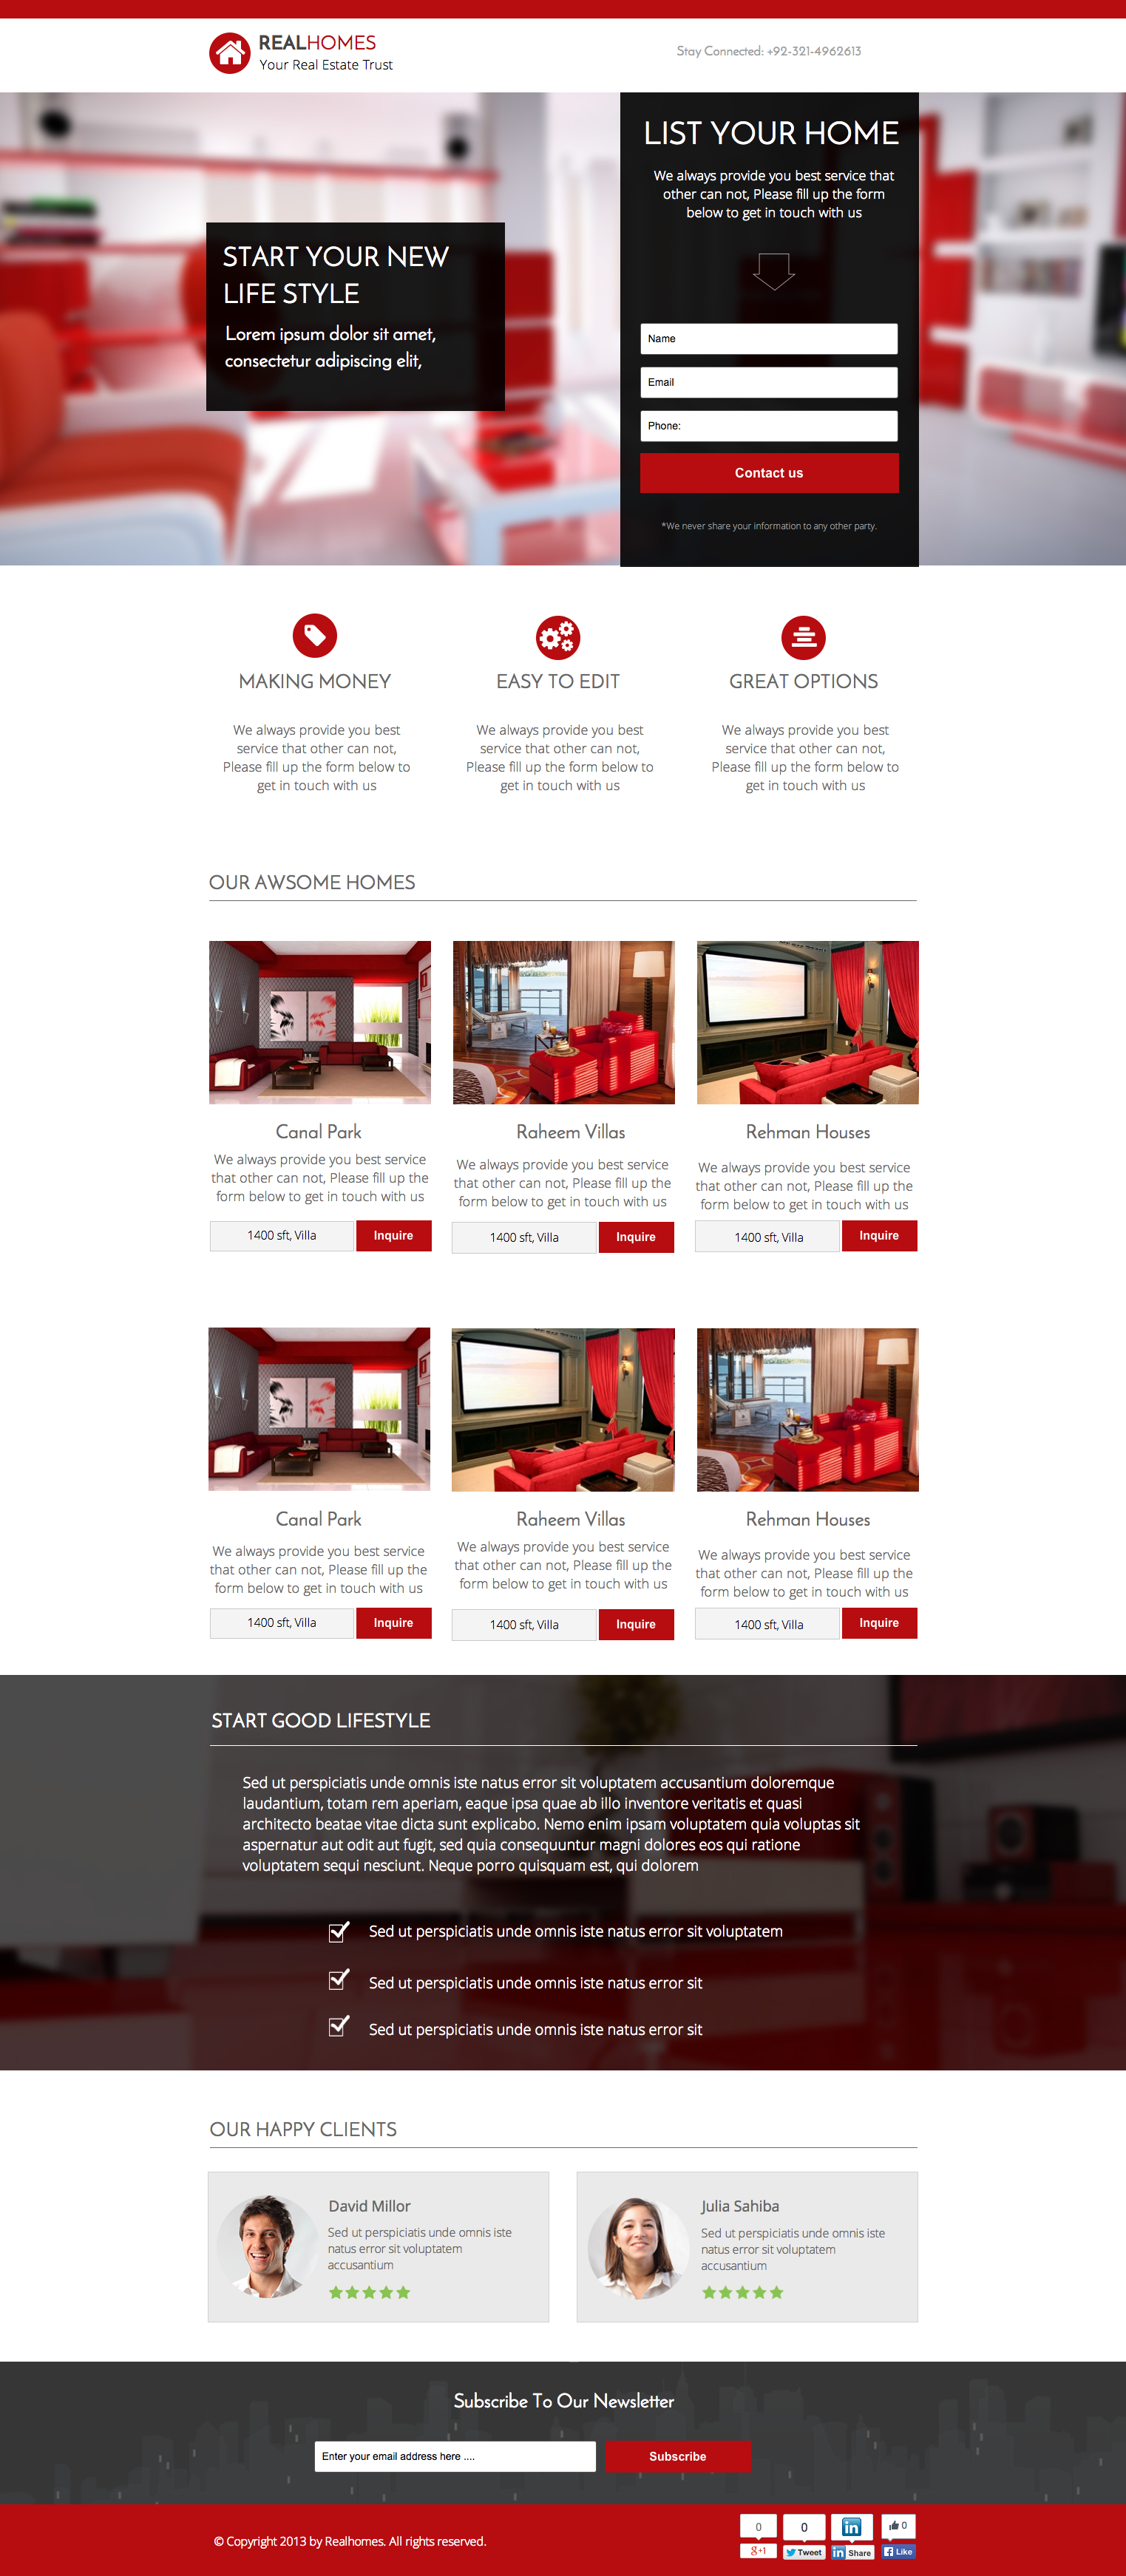 See the live template on Themeforest ➜ http://themeforest.net/item/instapage-realhomes-real-estate-landing-page/9339800